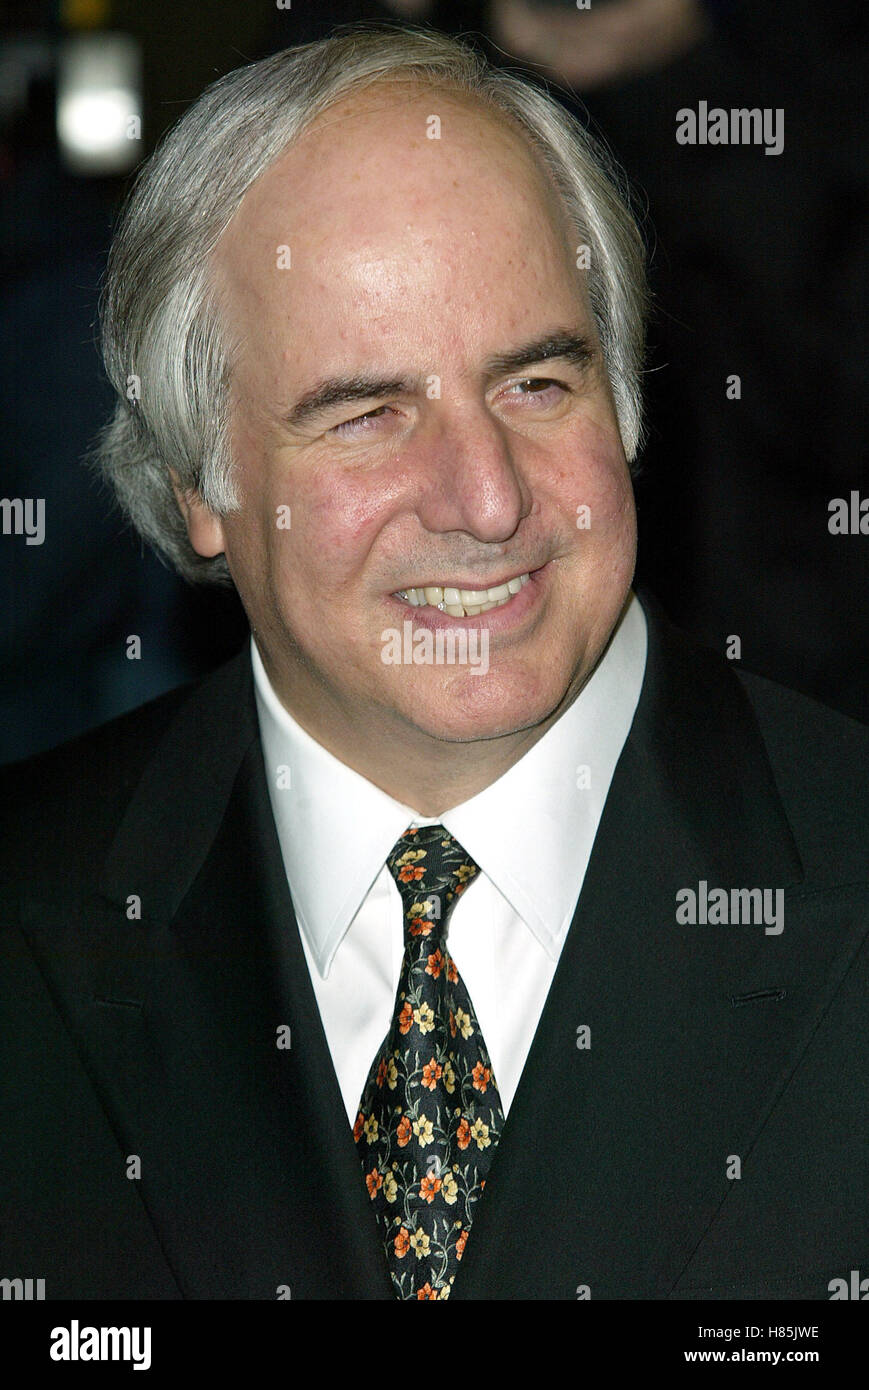 frank abagnale - photo #16